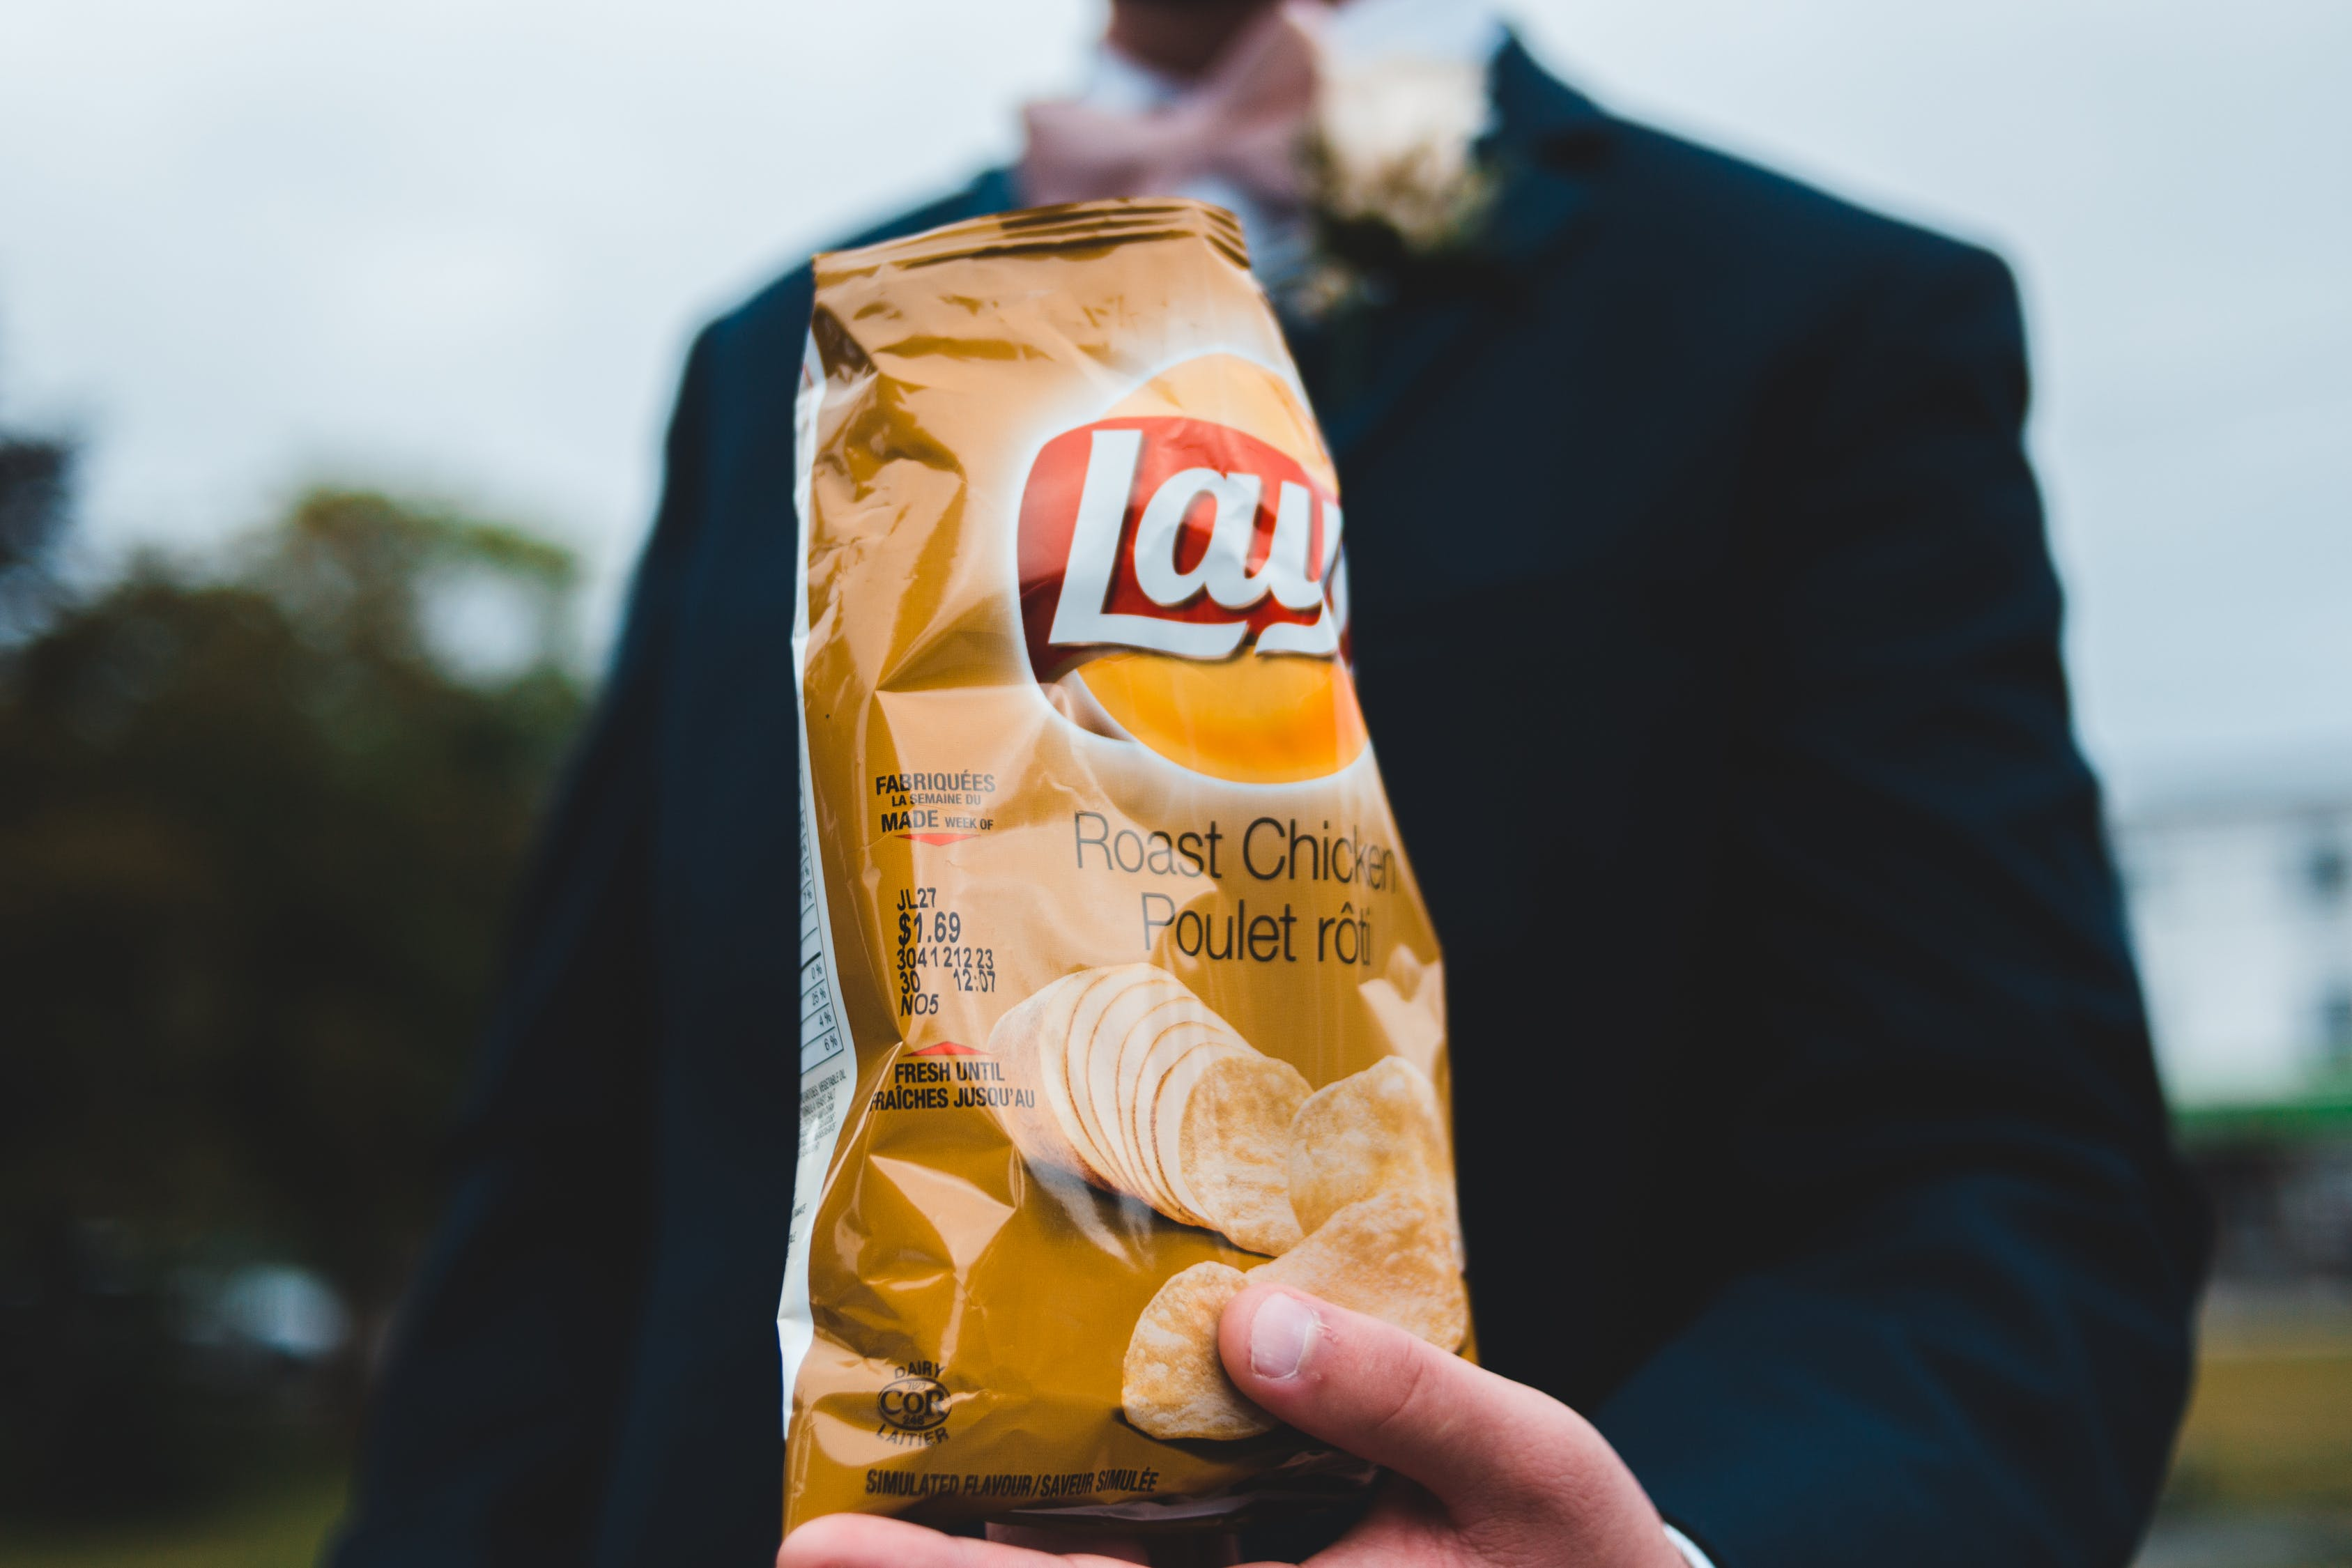 Unrecognizable man with bag of chips image for Frito Lay Case Study